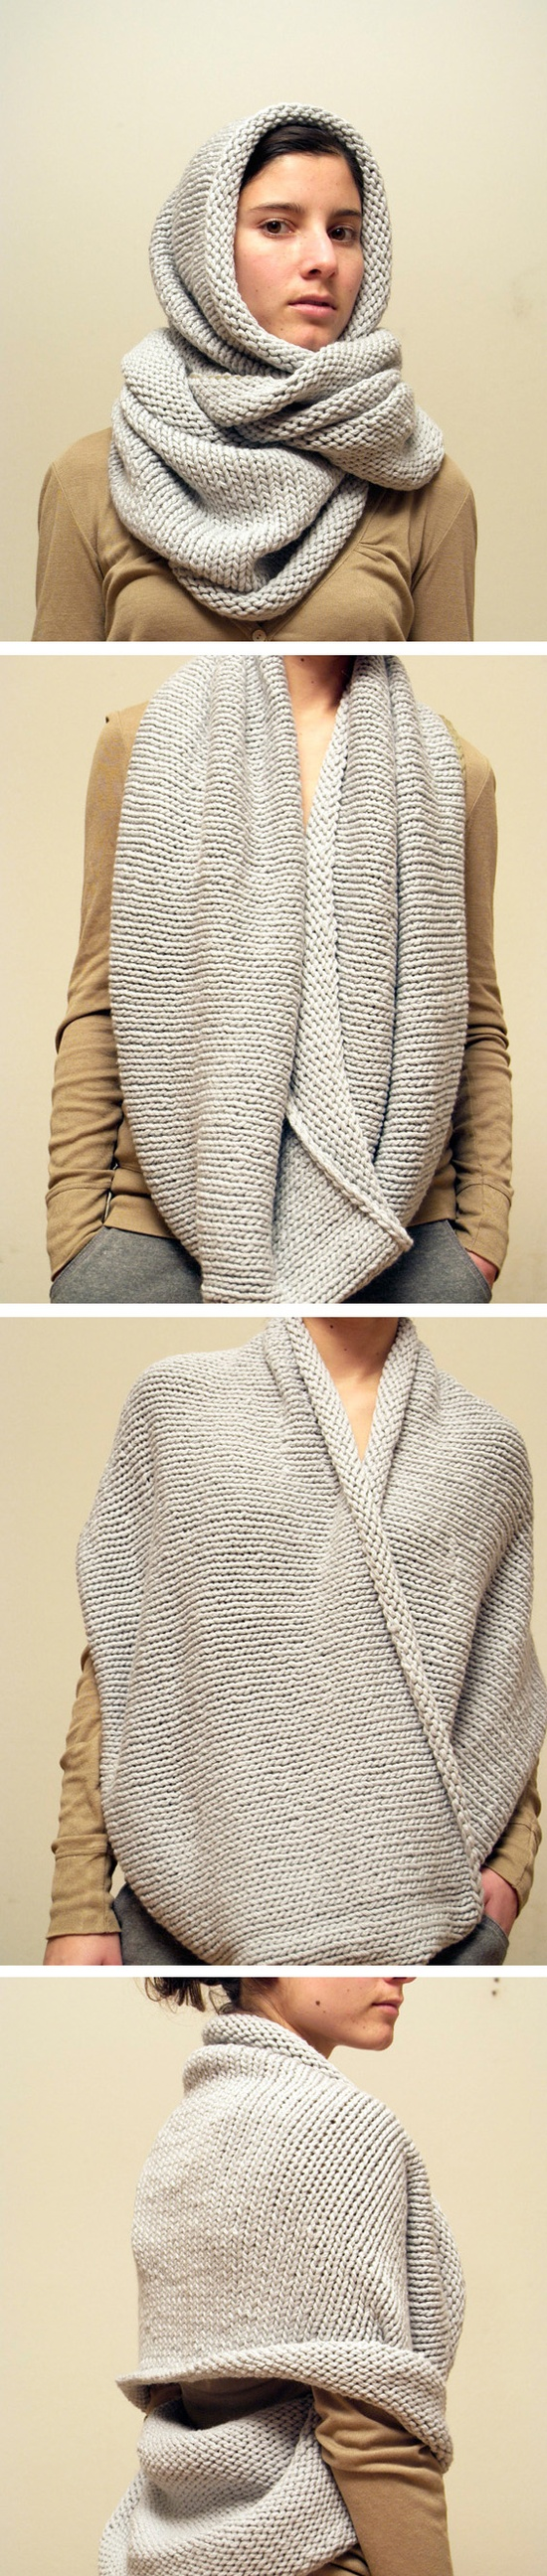 4 Different ways to wear a snood / eternity scarf. I would add a ...